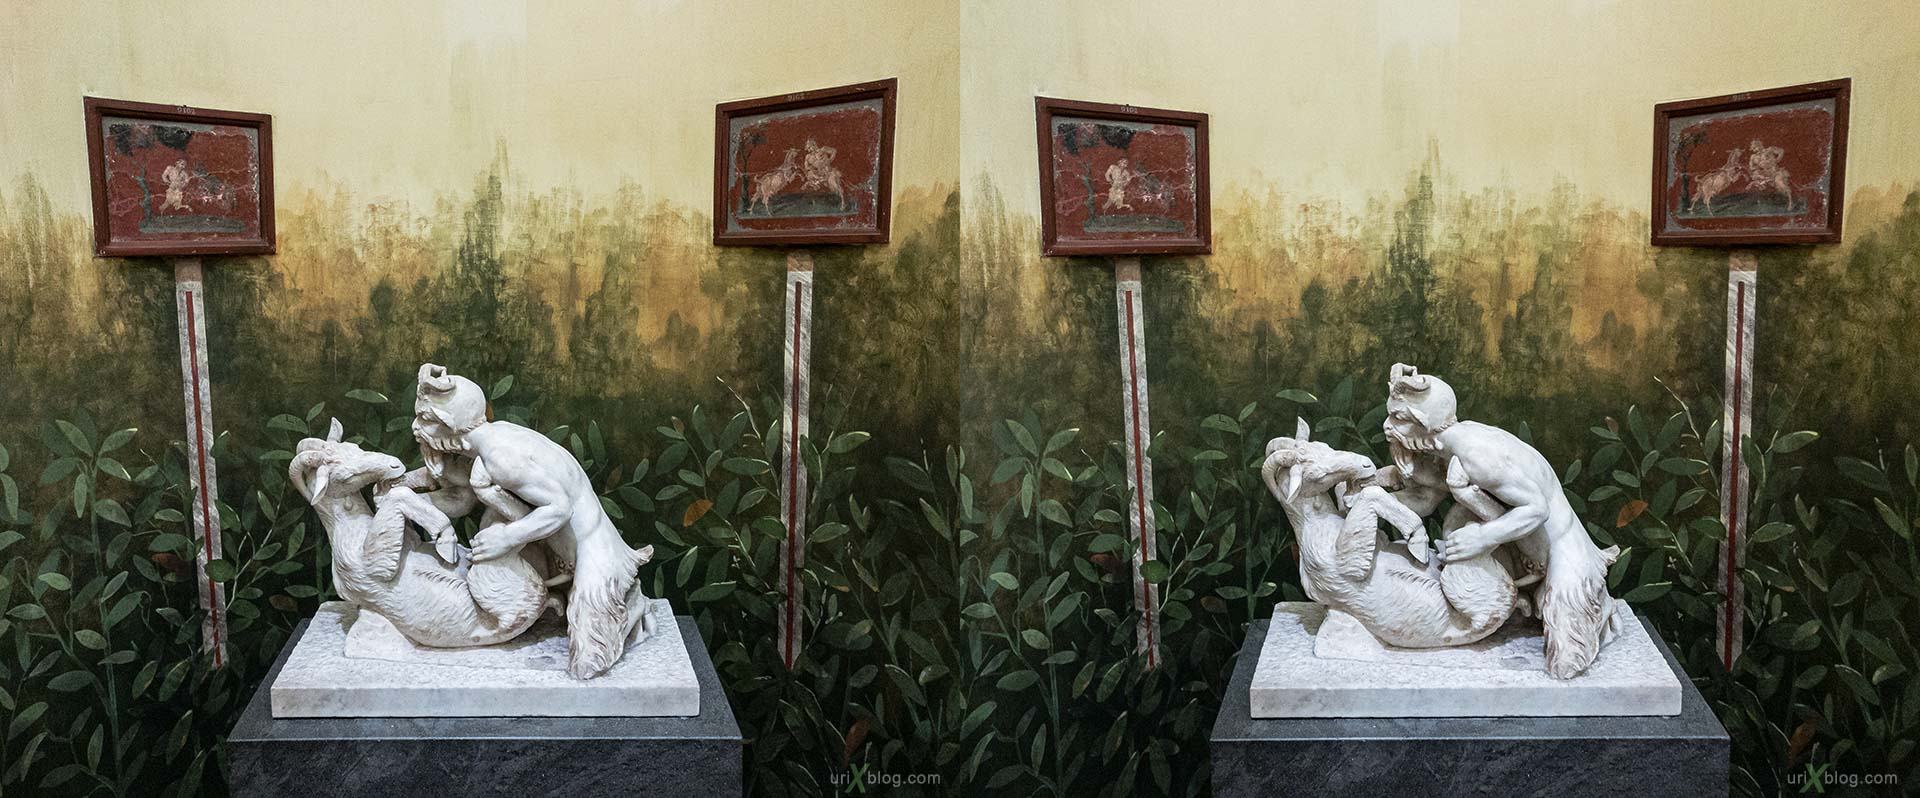 Secret cabinet, National Archaeological Museum of Naples, figurine, erotics, ancient Rome, Pompei, exhibition, Naples, Italy, 3D, stereo pair, cross-eyed, crossview, cross view stereo pair, stereoscopic